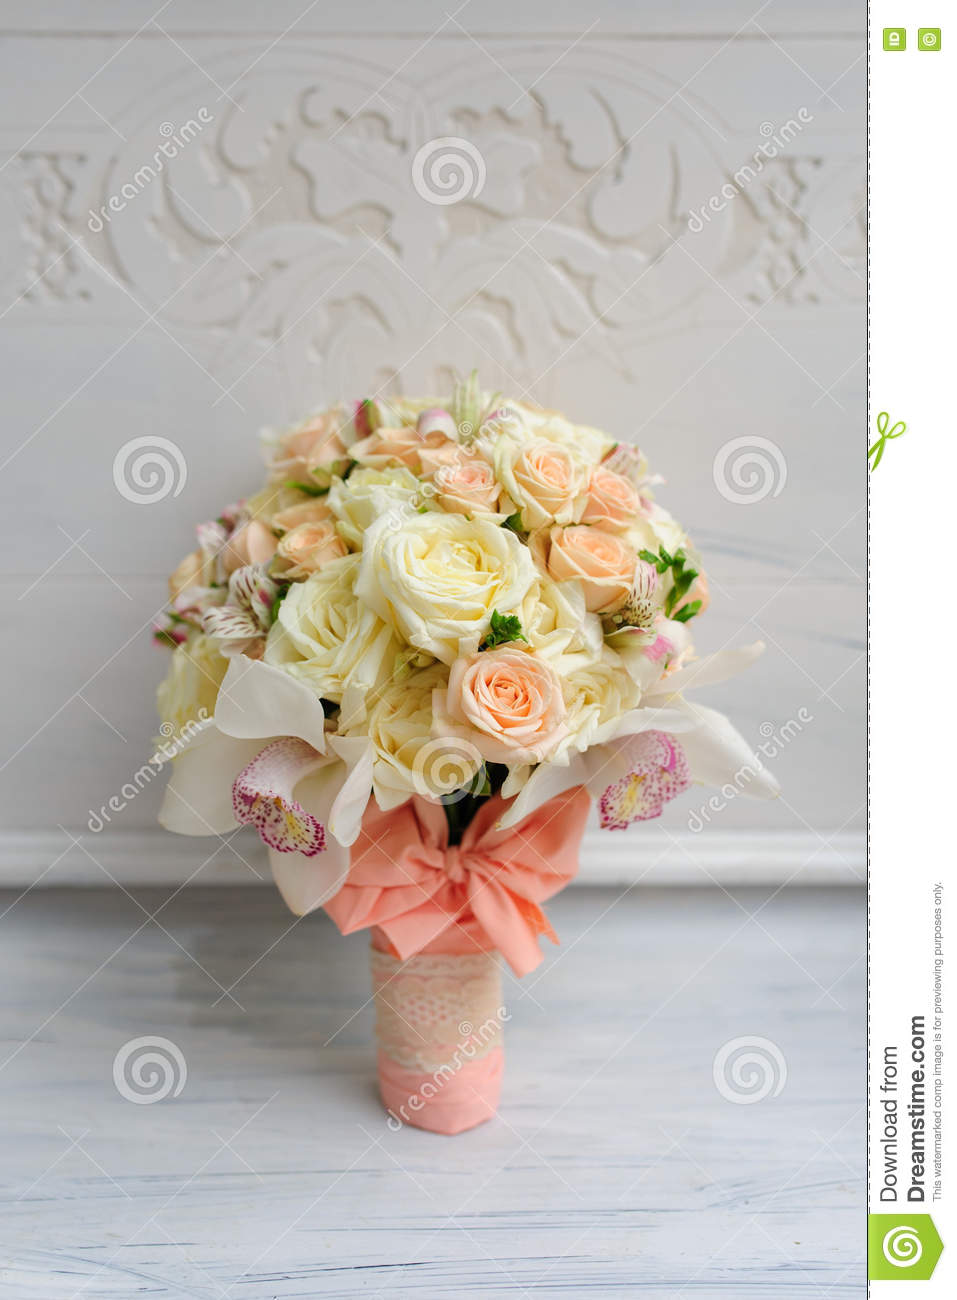 Beautiful Wedding Flower Bouquet For Bride Stock Image - Image of ...